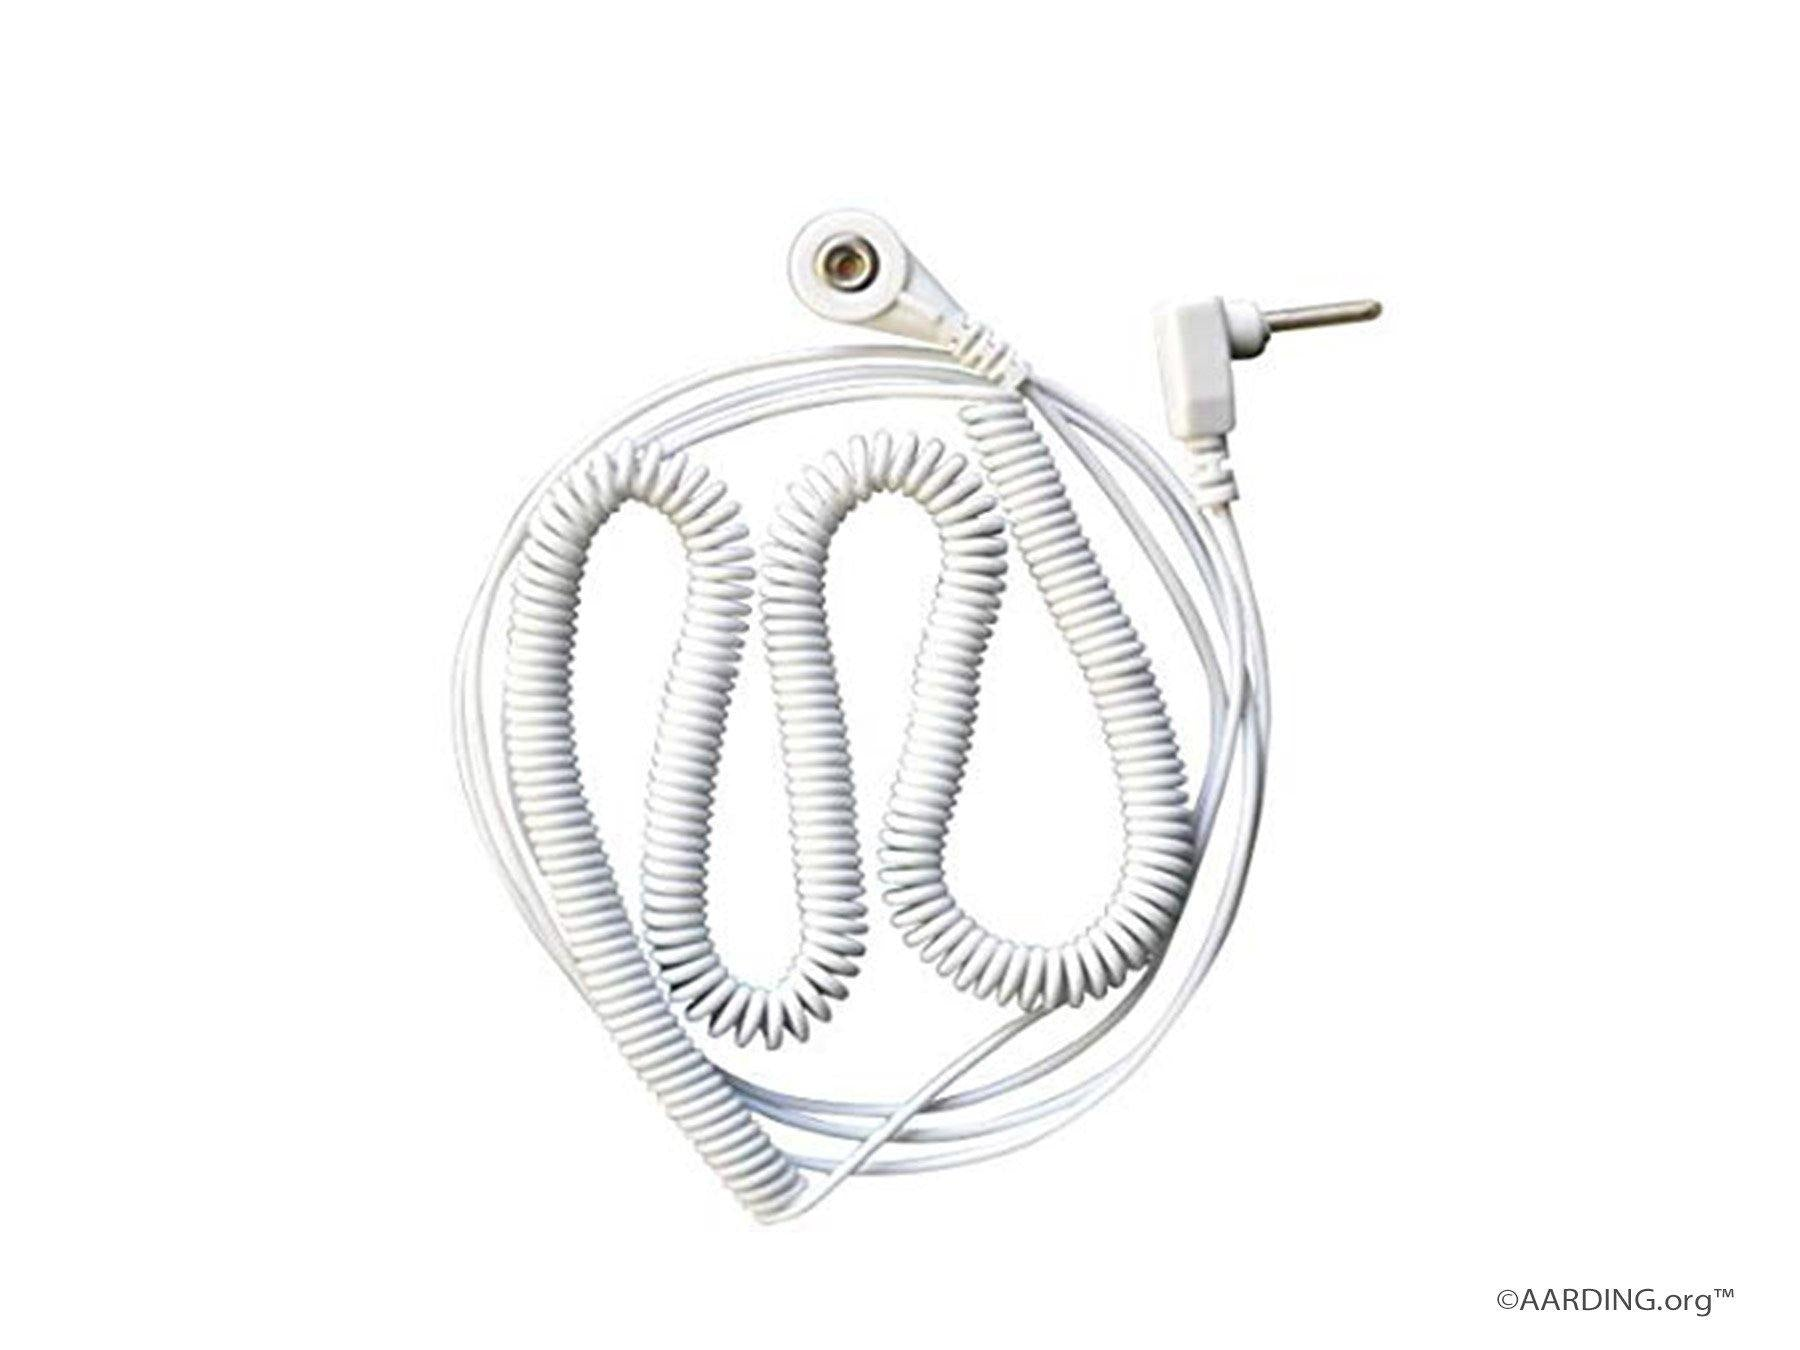 Standard Coiled Connection Cable 13ft (4m) - Aarding